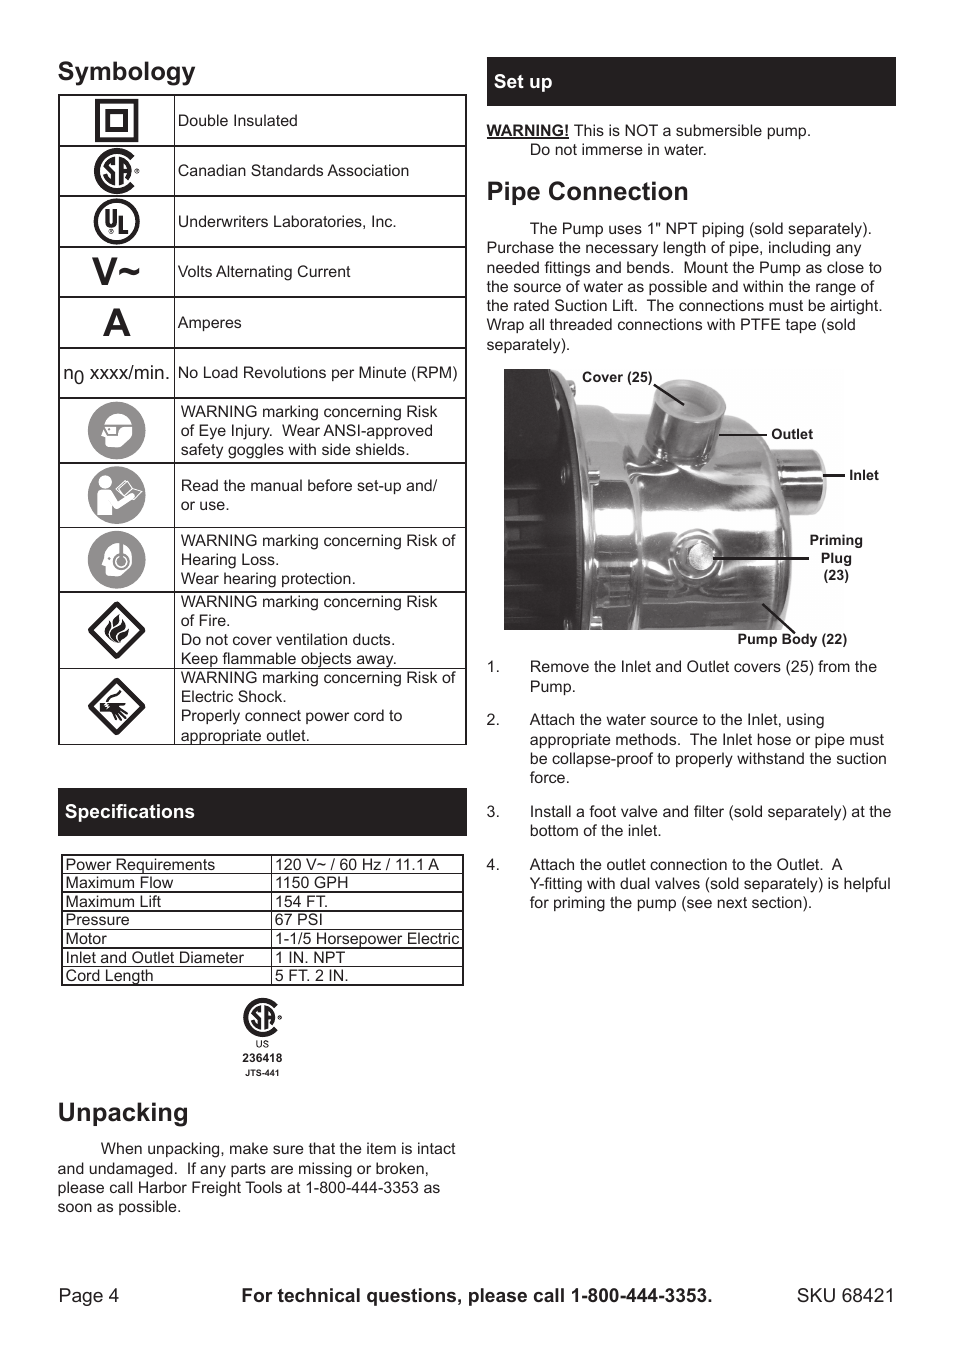 Pacific hydrostar pump manual